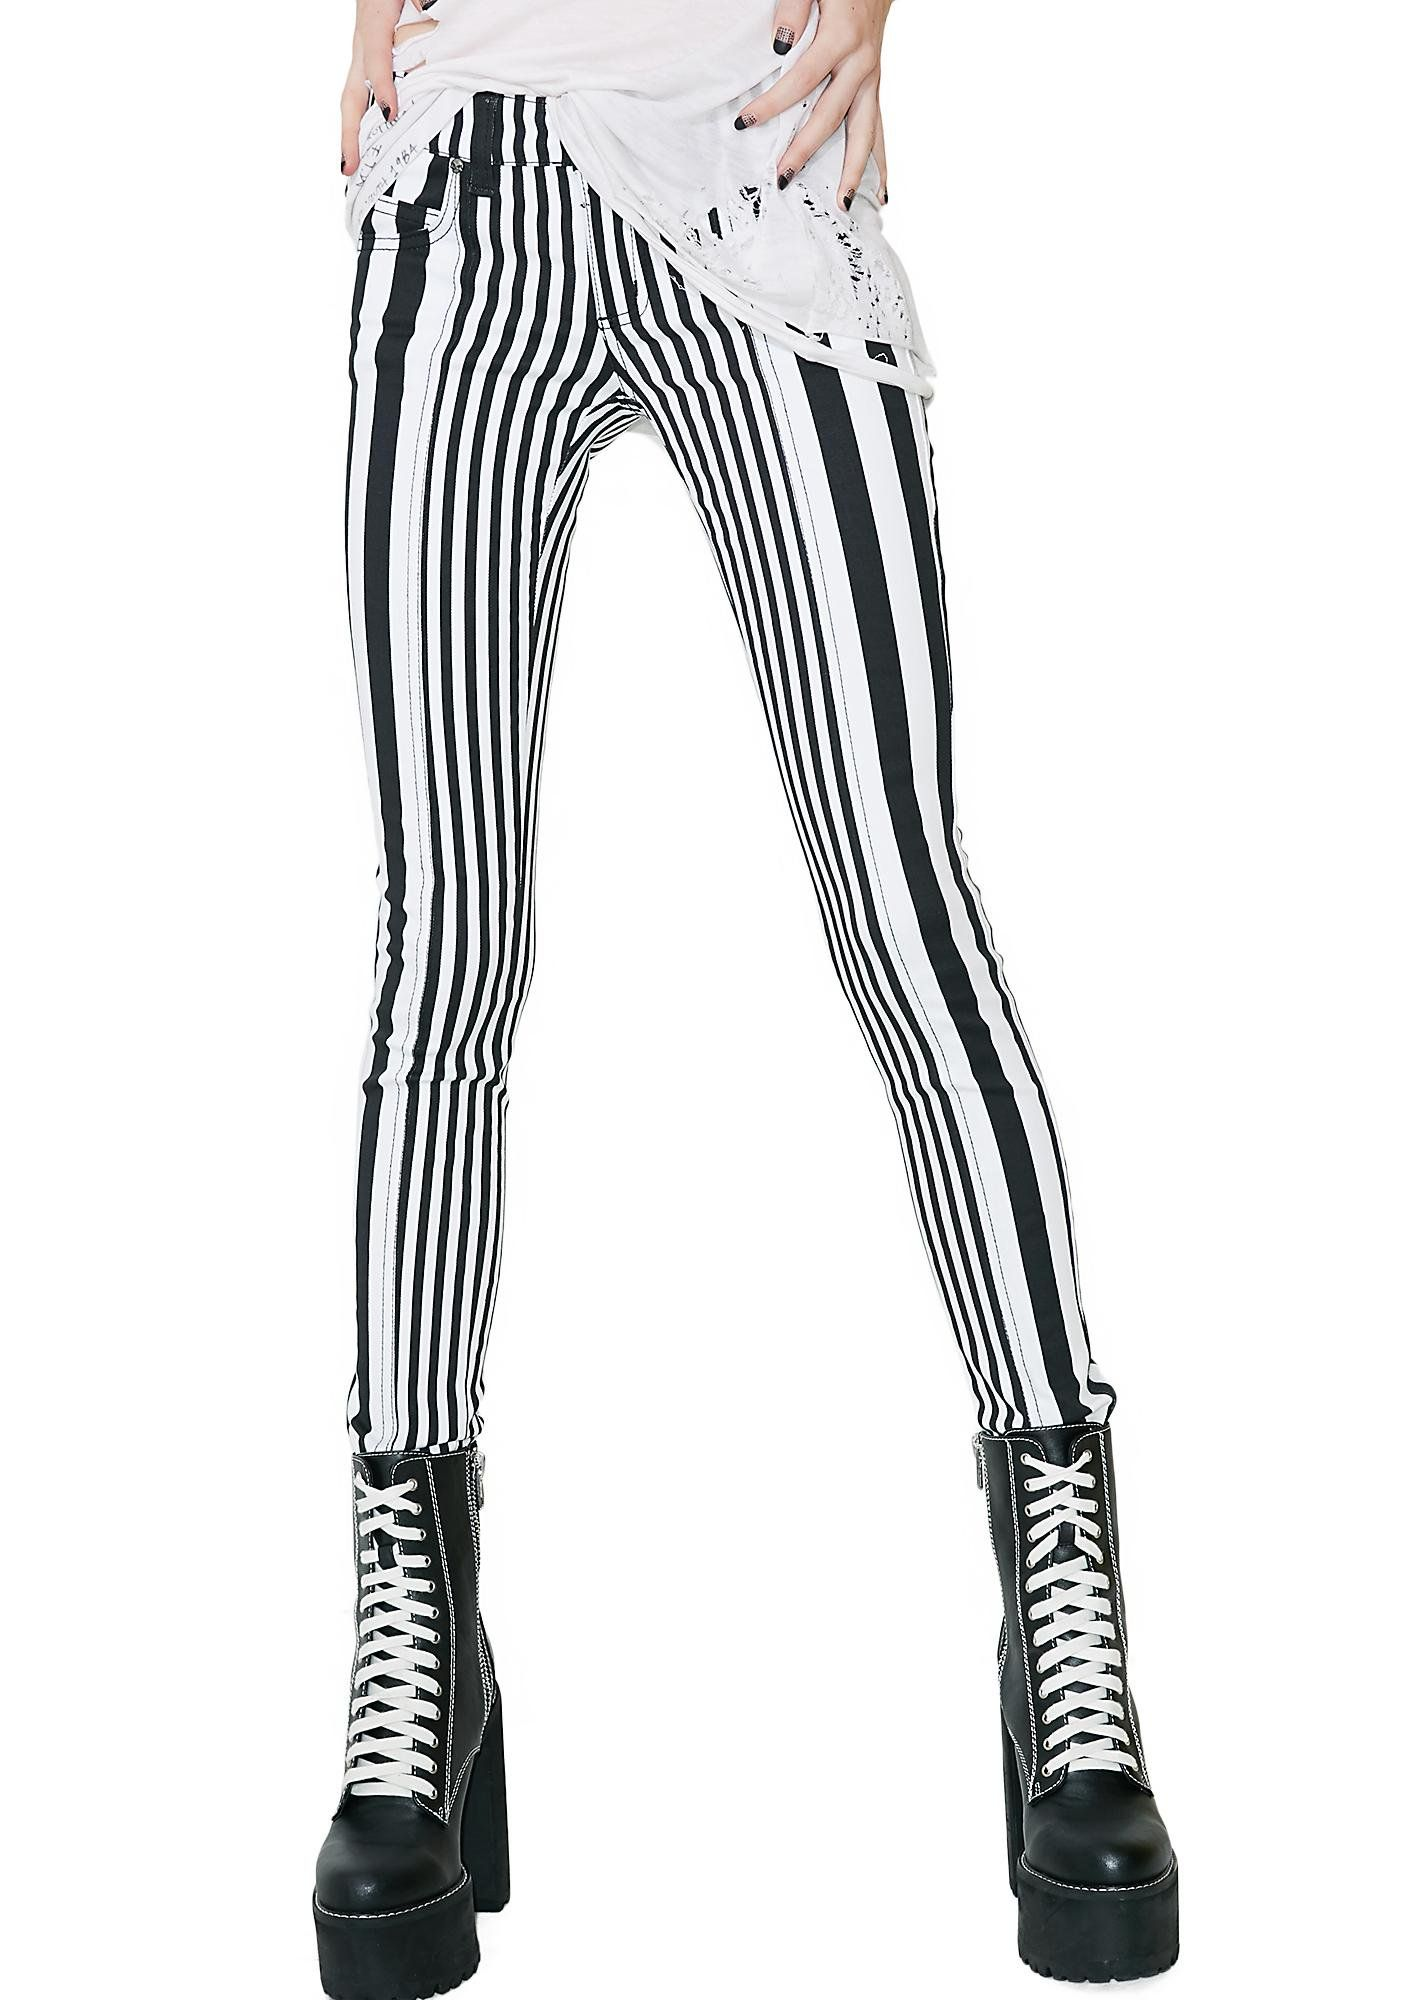 7004914d051b Tripp NYC Variable Jeans will draw the line for ya. These skinny striped  jeans have a classikk five pocket design and a button N' zipper closure.